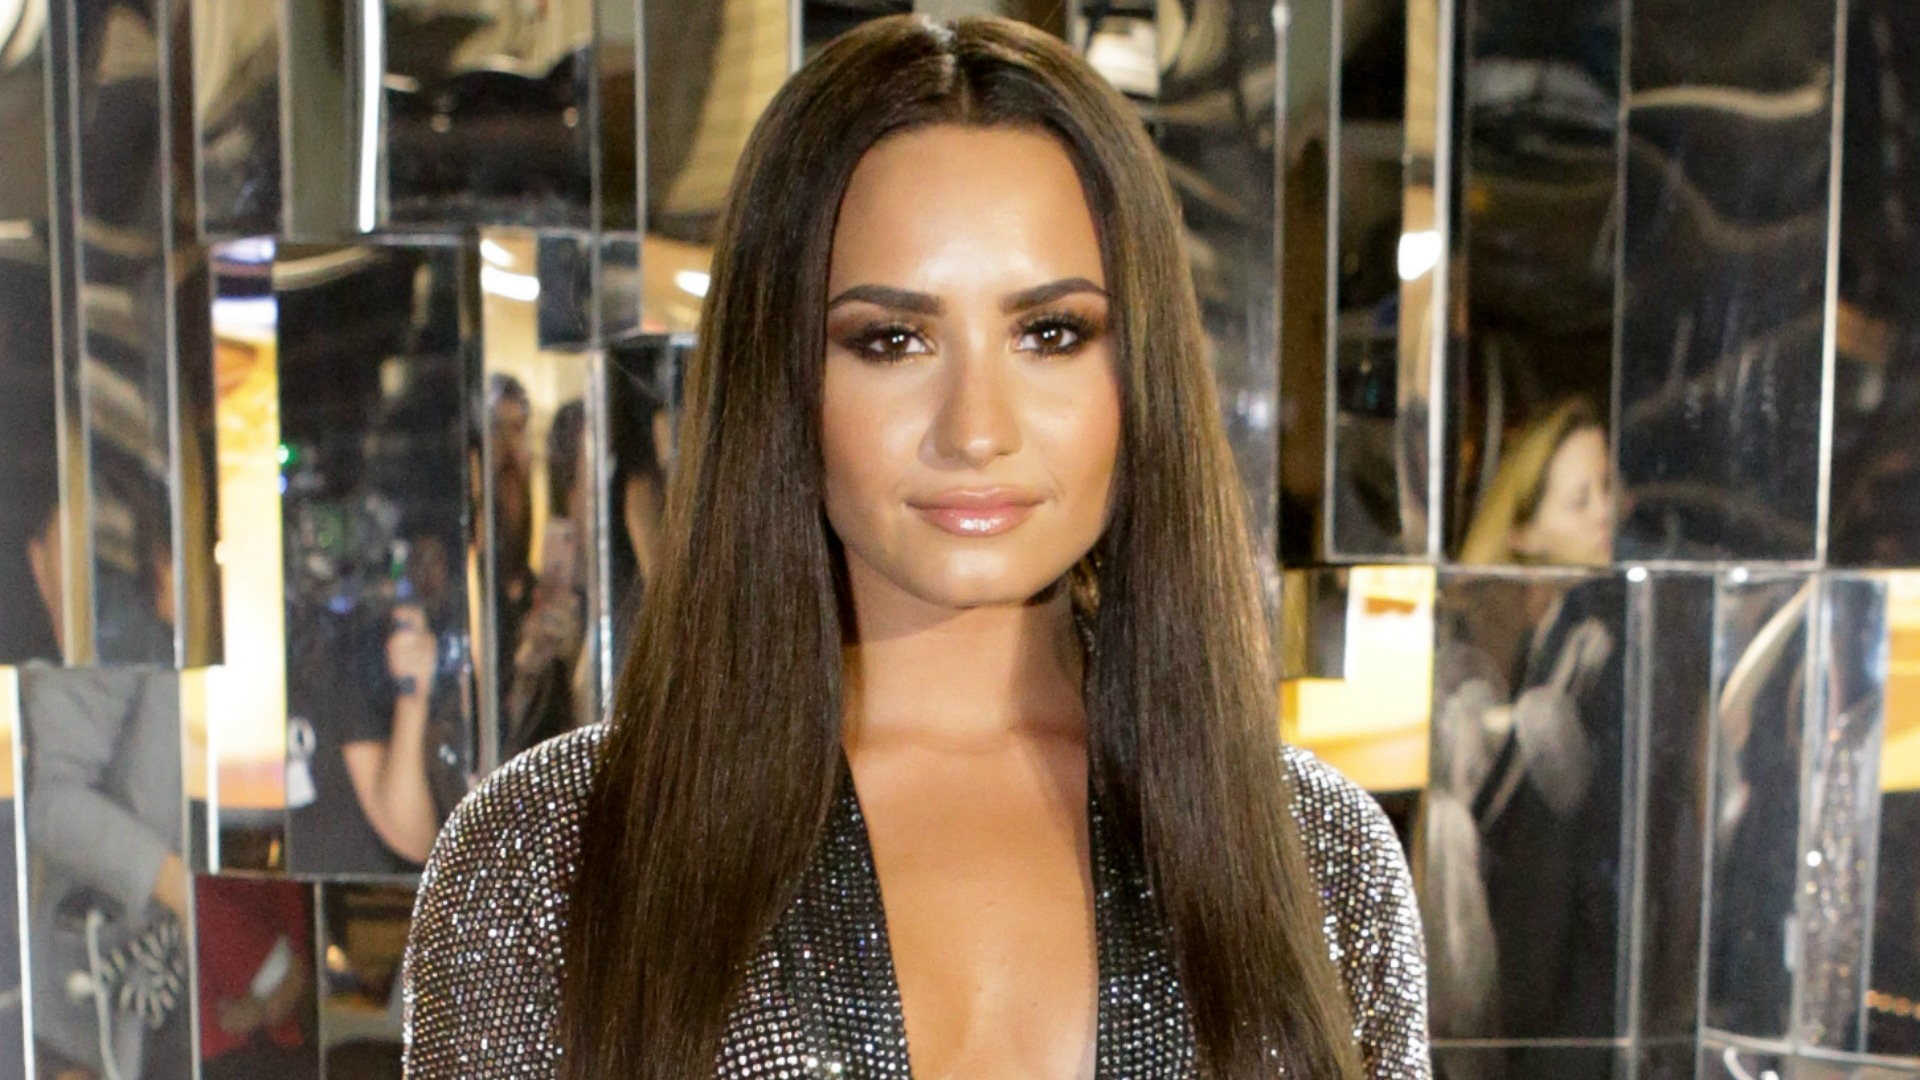 Demi Lovato rocks a super-sleek look before performing in The Bee Gees tribute.